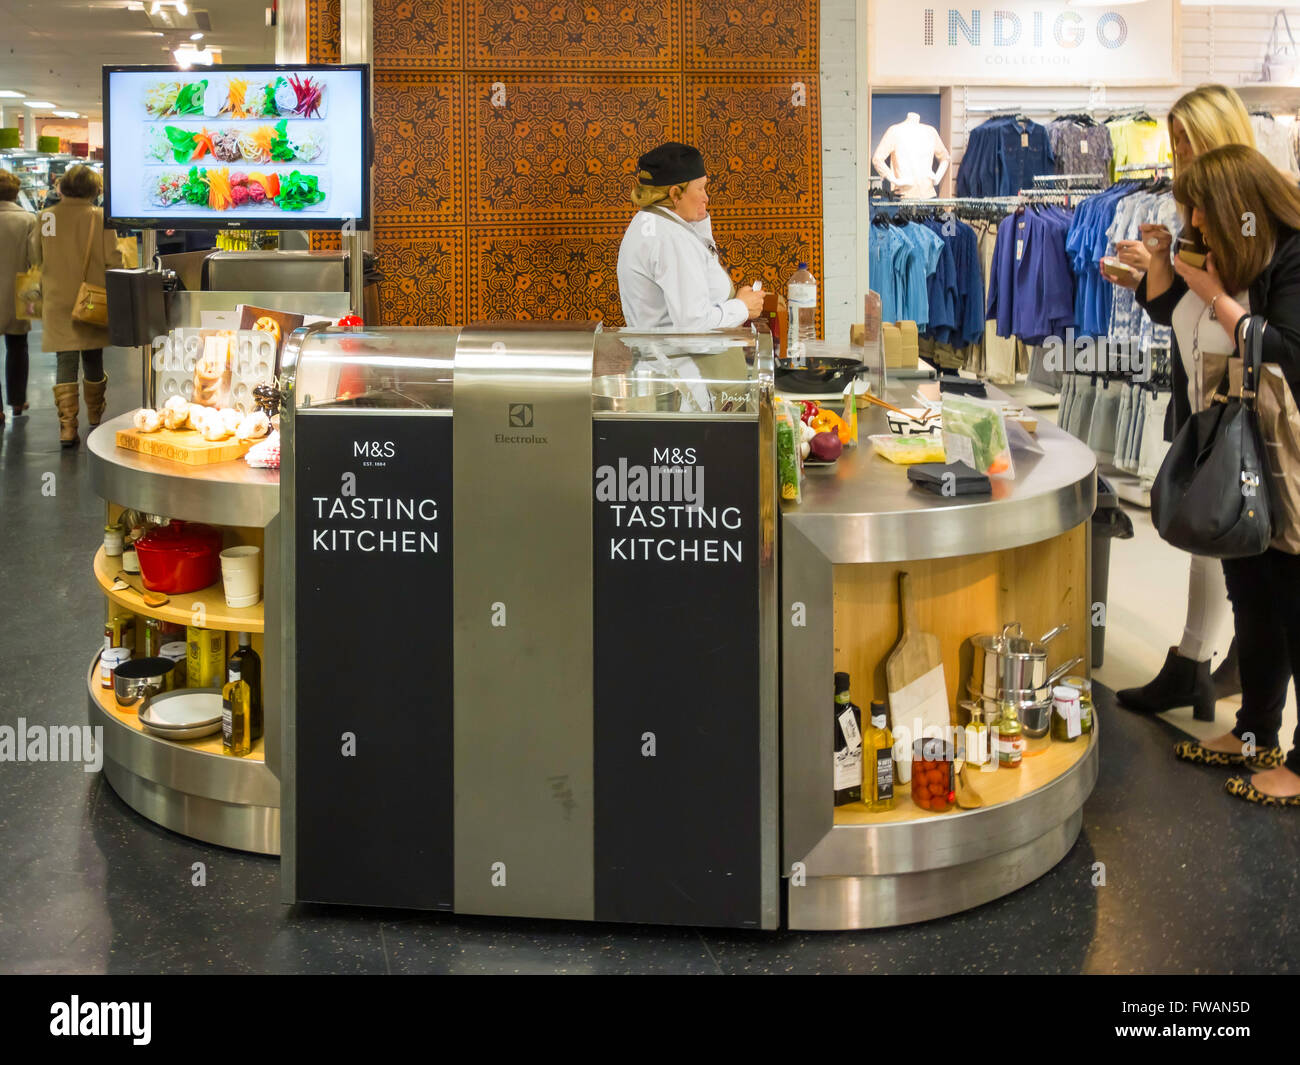 online kitchen store sieve marks and spencer in tasting where customers